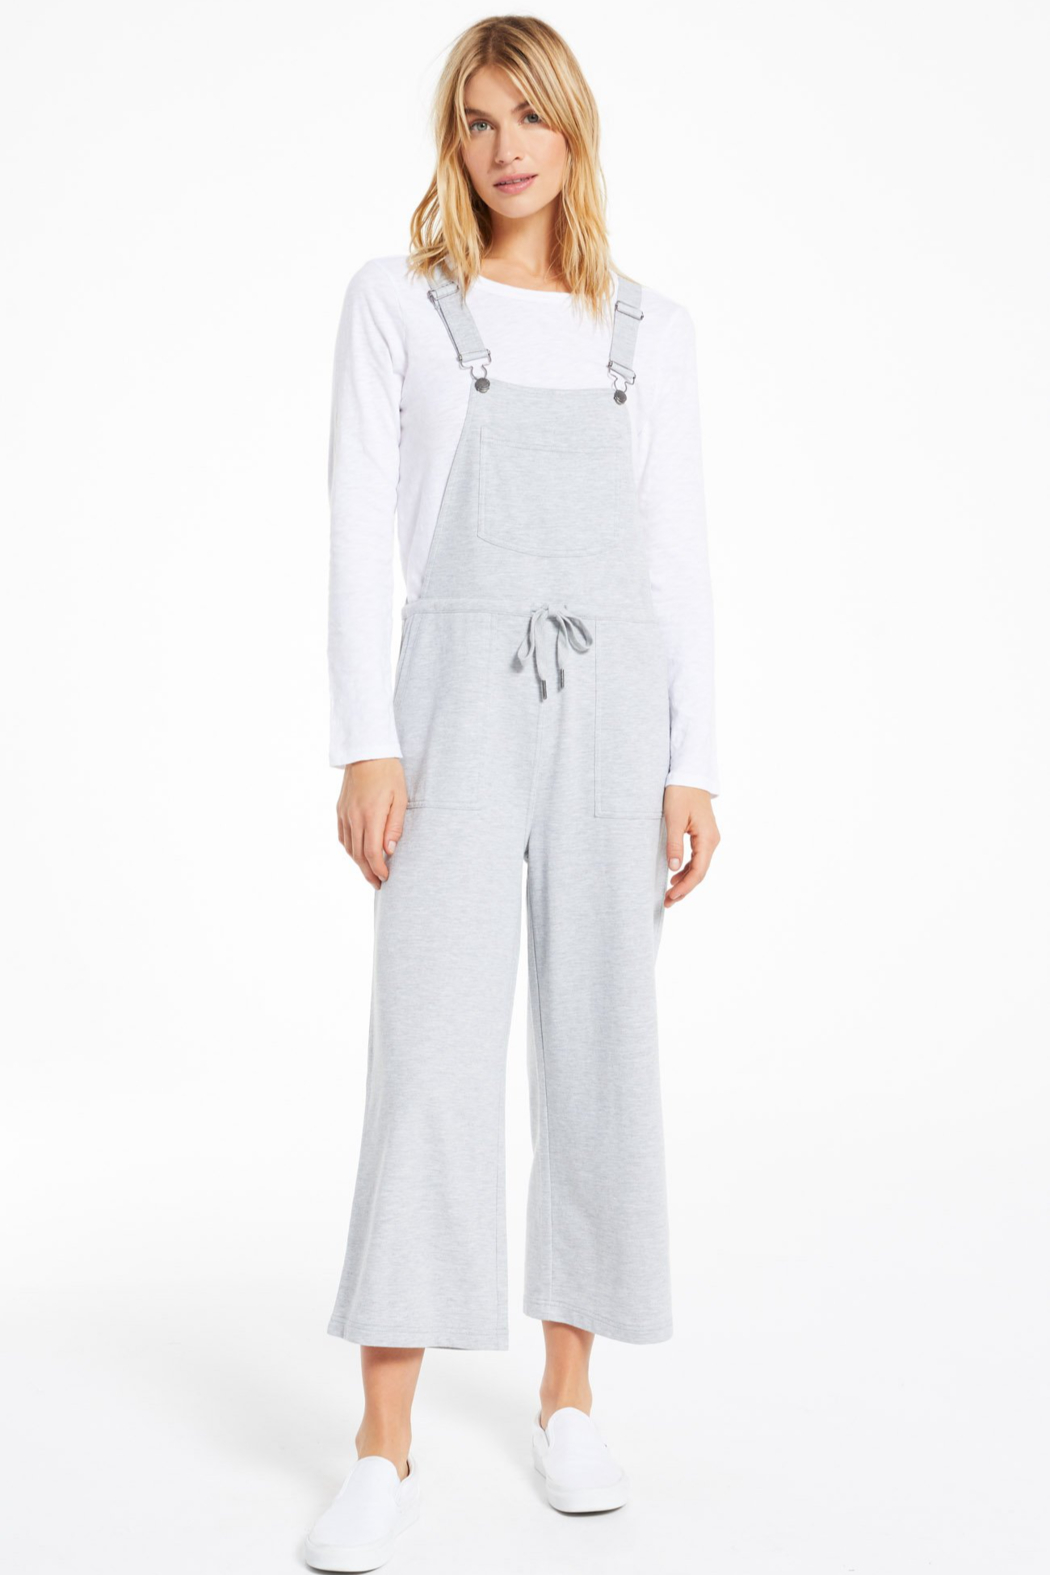 z supply Cinched Waist Overalls - Main Image